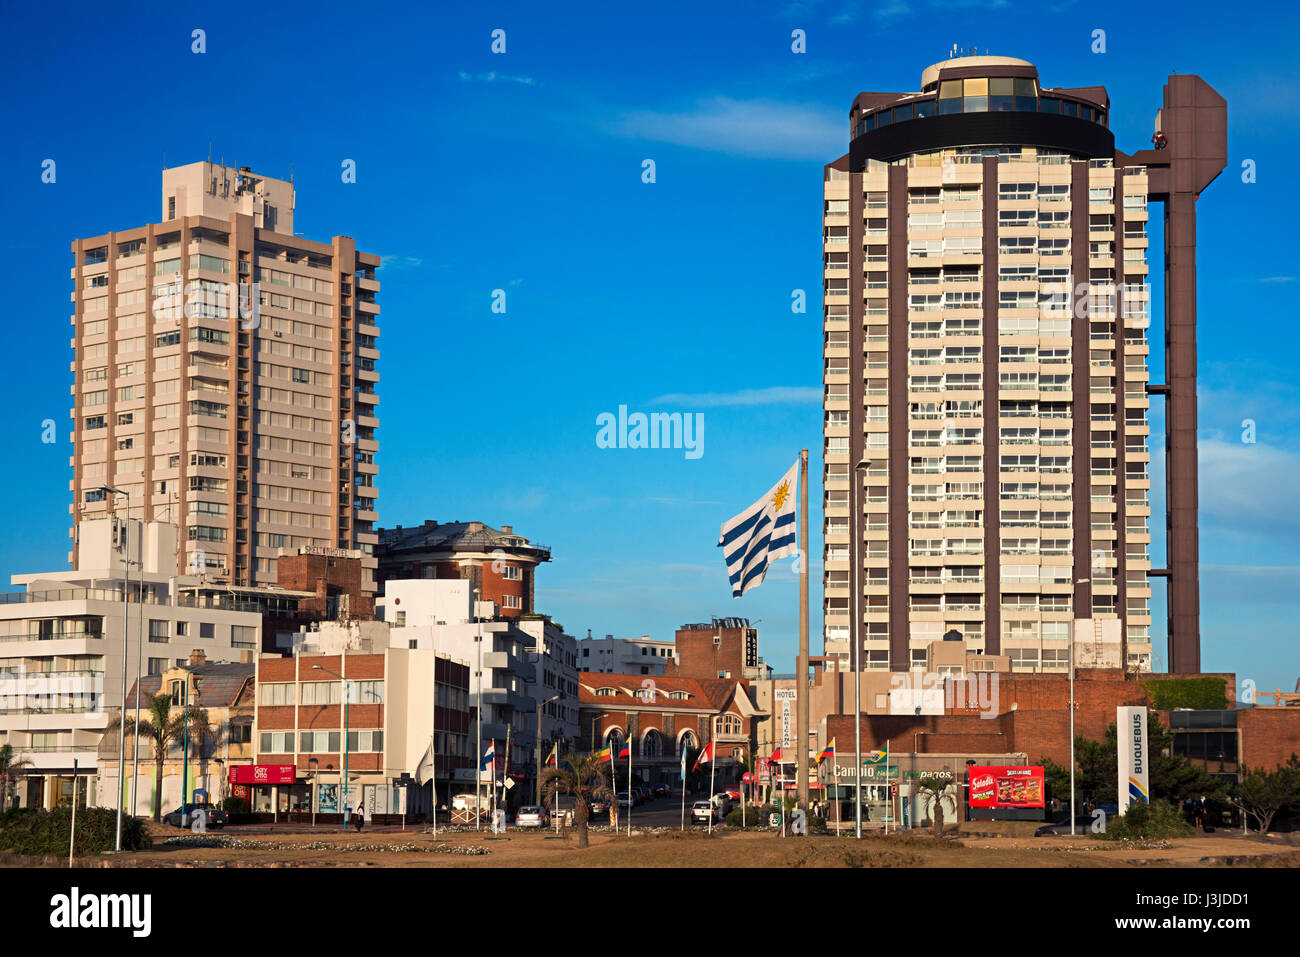 Buildings in the beach front in Playa Brava, Punta del Este, Uruguay. Stock Photo